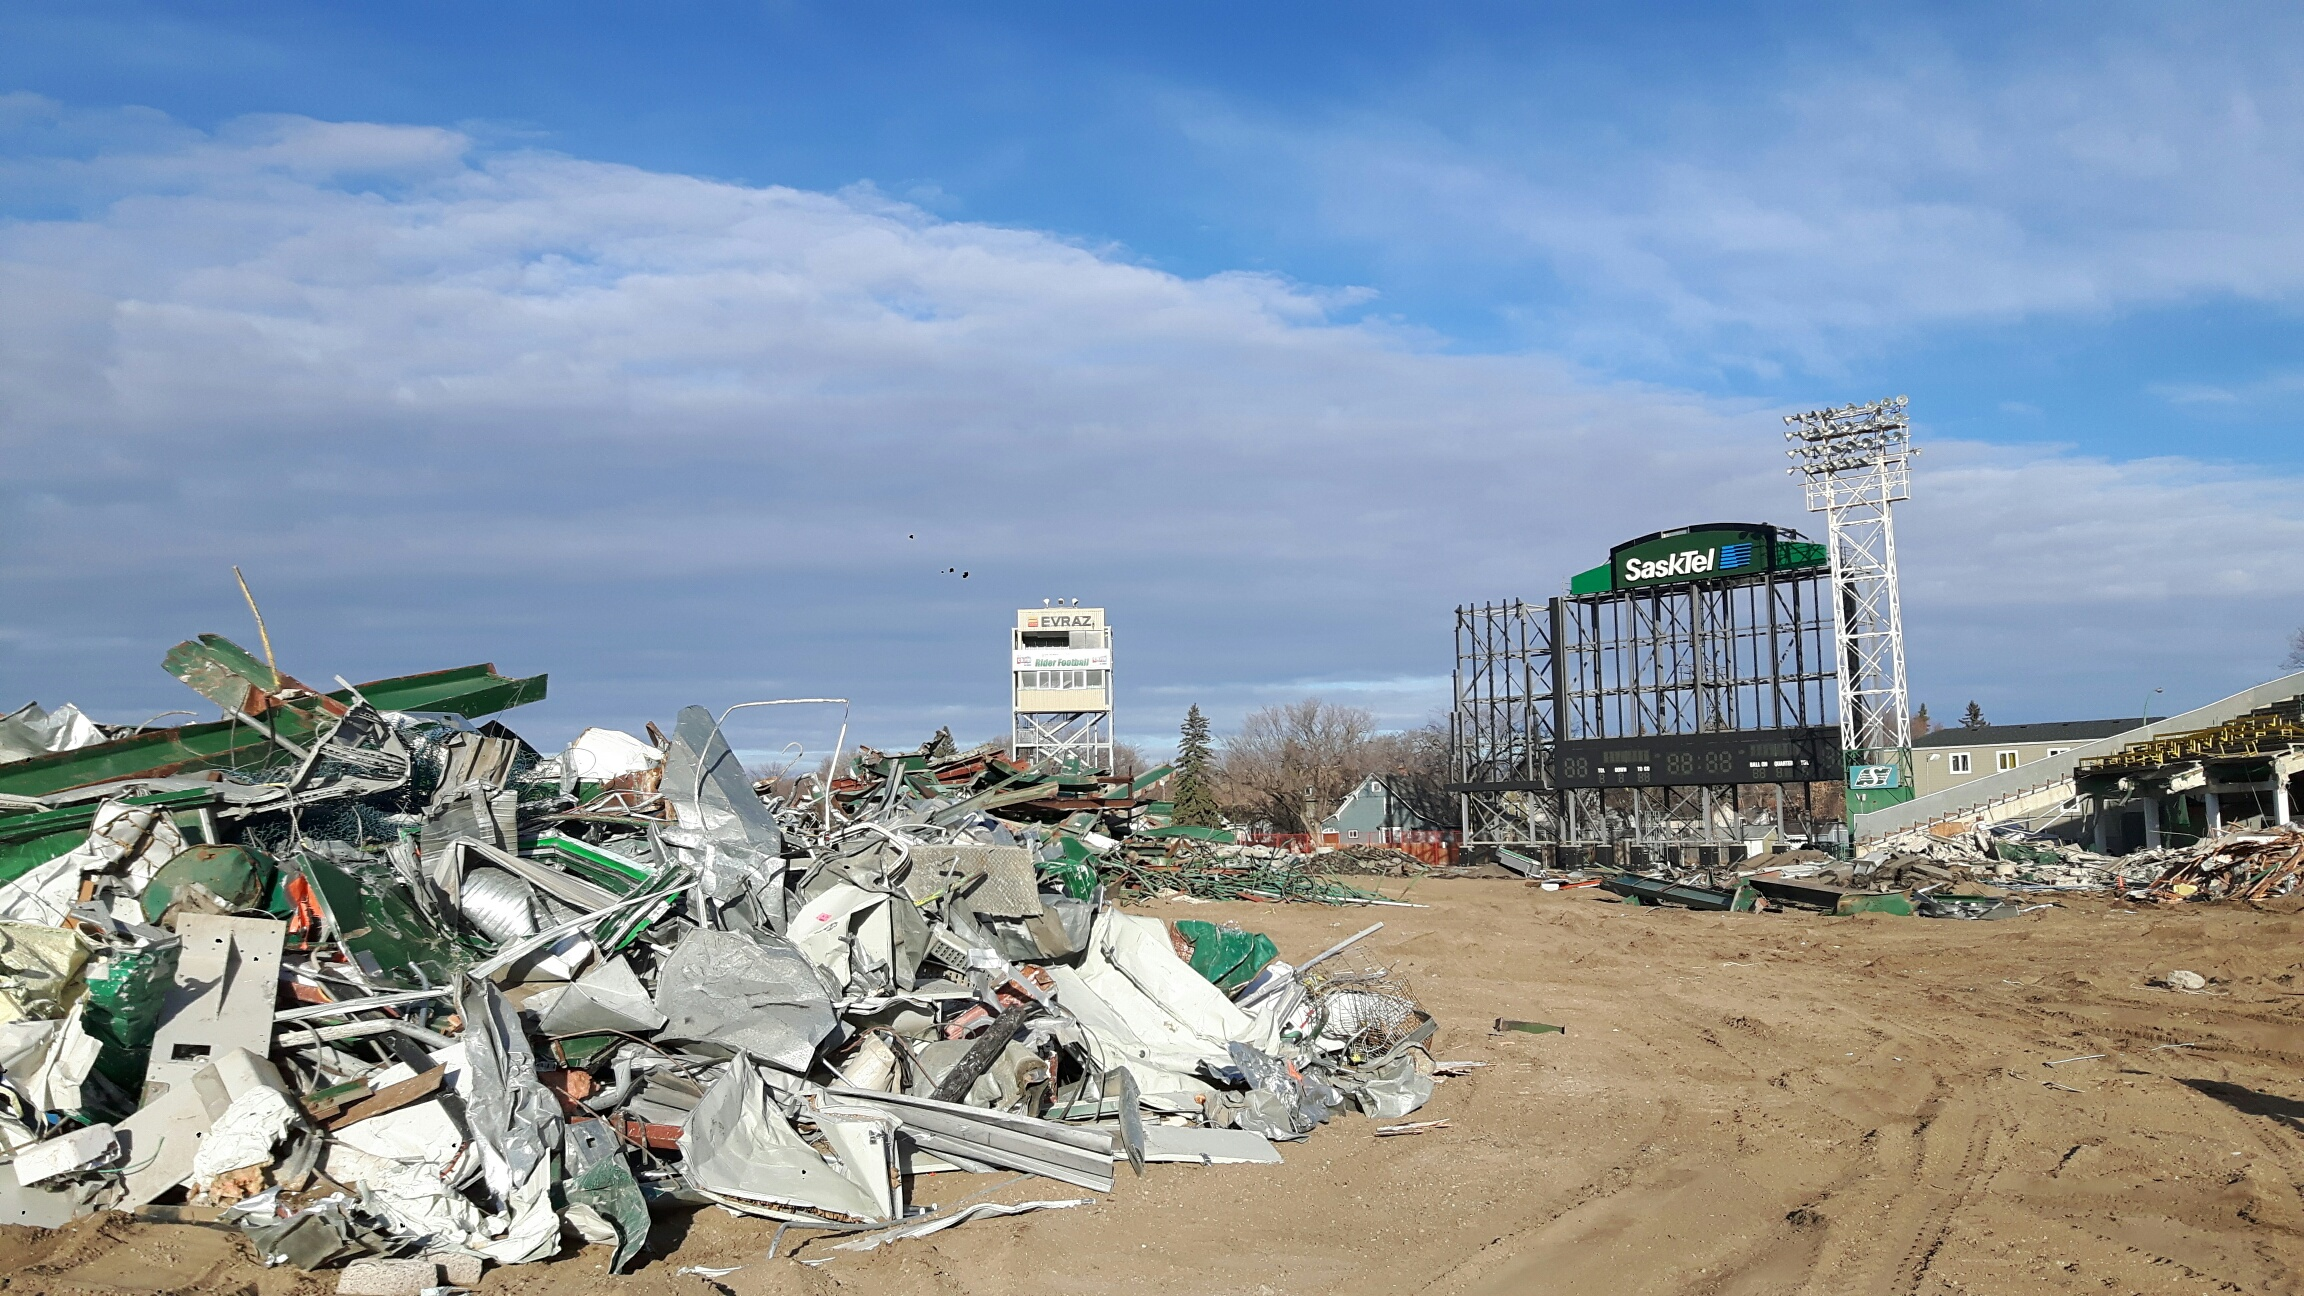 View of north end zone and former max tron during demolition of old Mosaic Stadium Oct. 24, 2017. (Adriana Christianson/980 CJME)